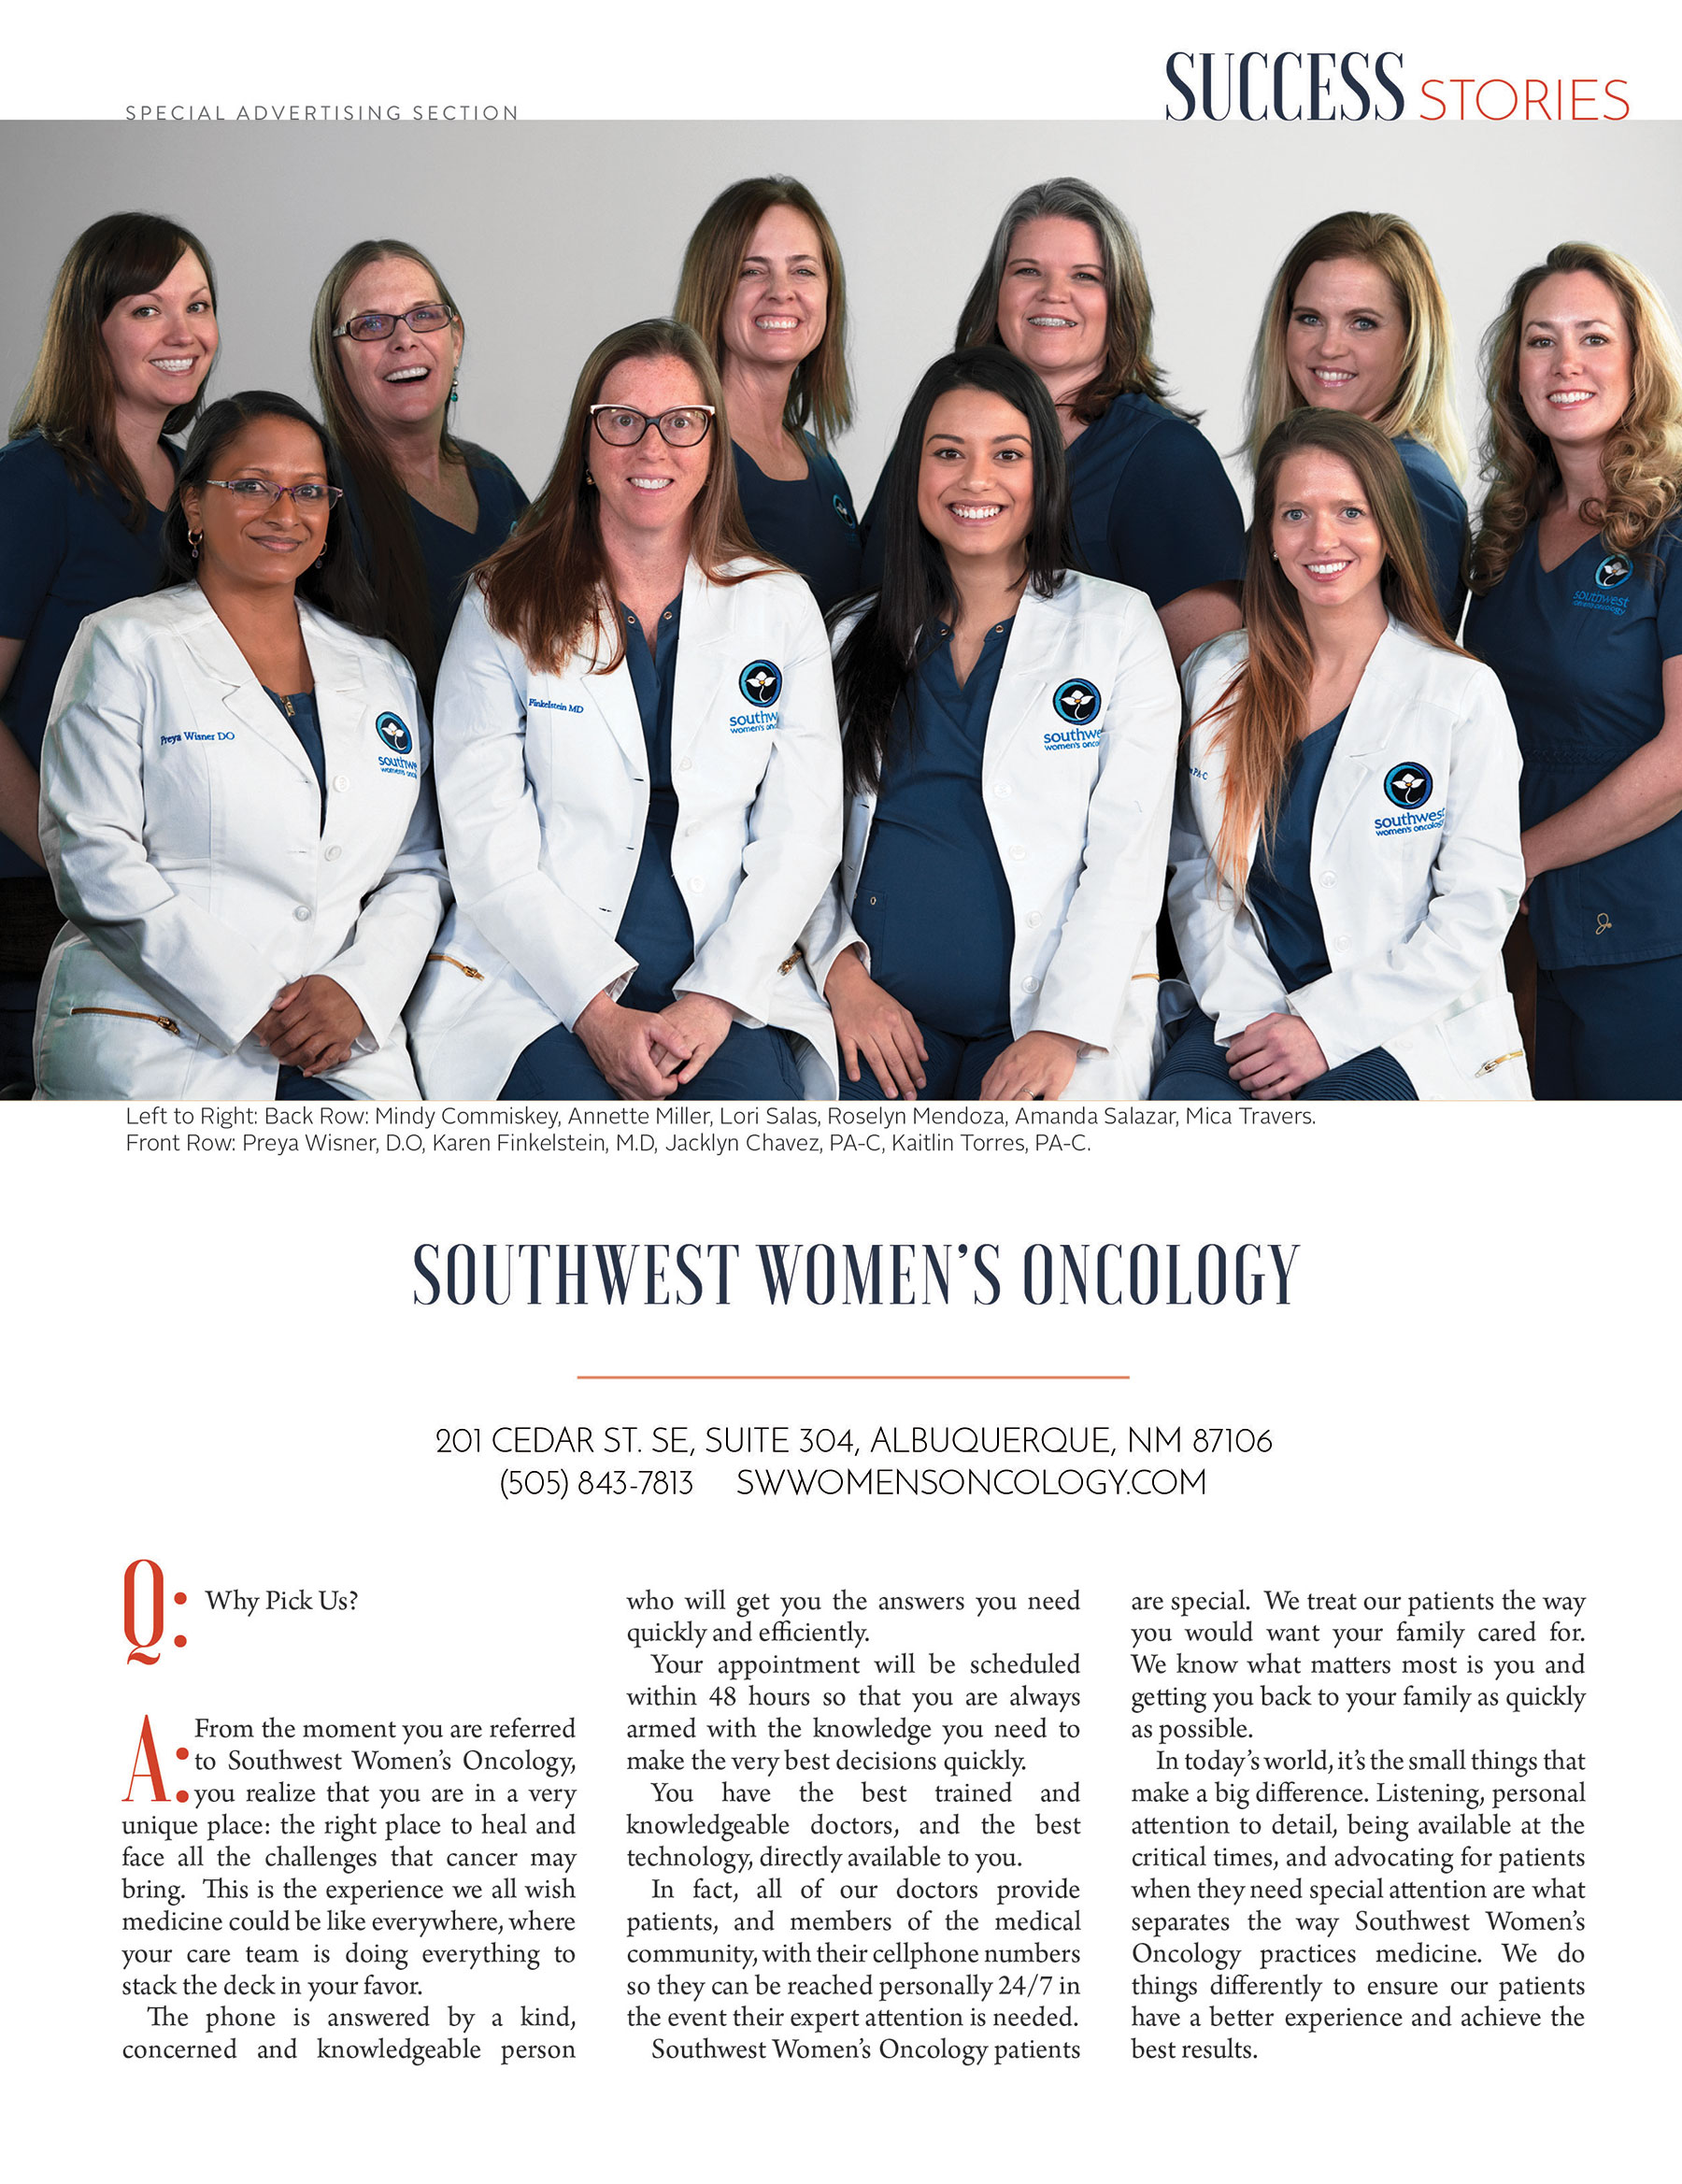 southwest womens oncology inspires cancer patients to go further